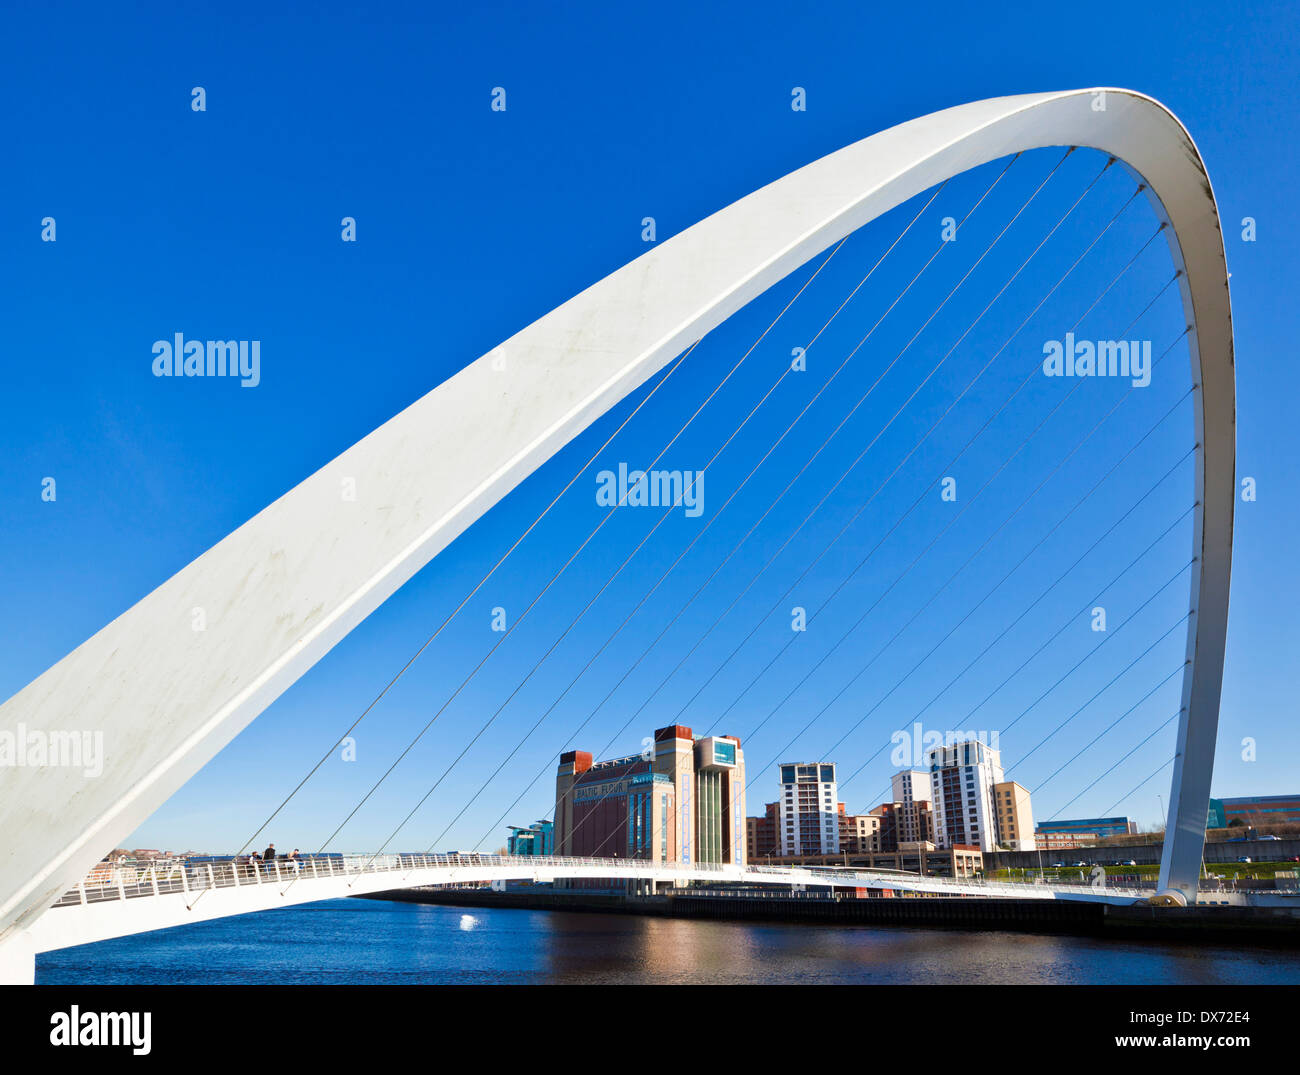 gateshead Millennium bridge over River Tyne Newcastle upon Tyne Tyne and Wear Tyneside England UK GB EU Europe - Stock Image